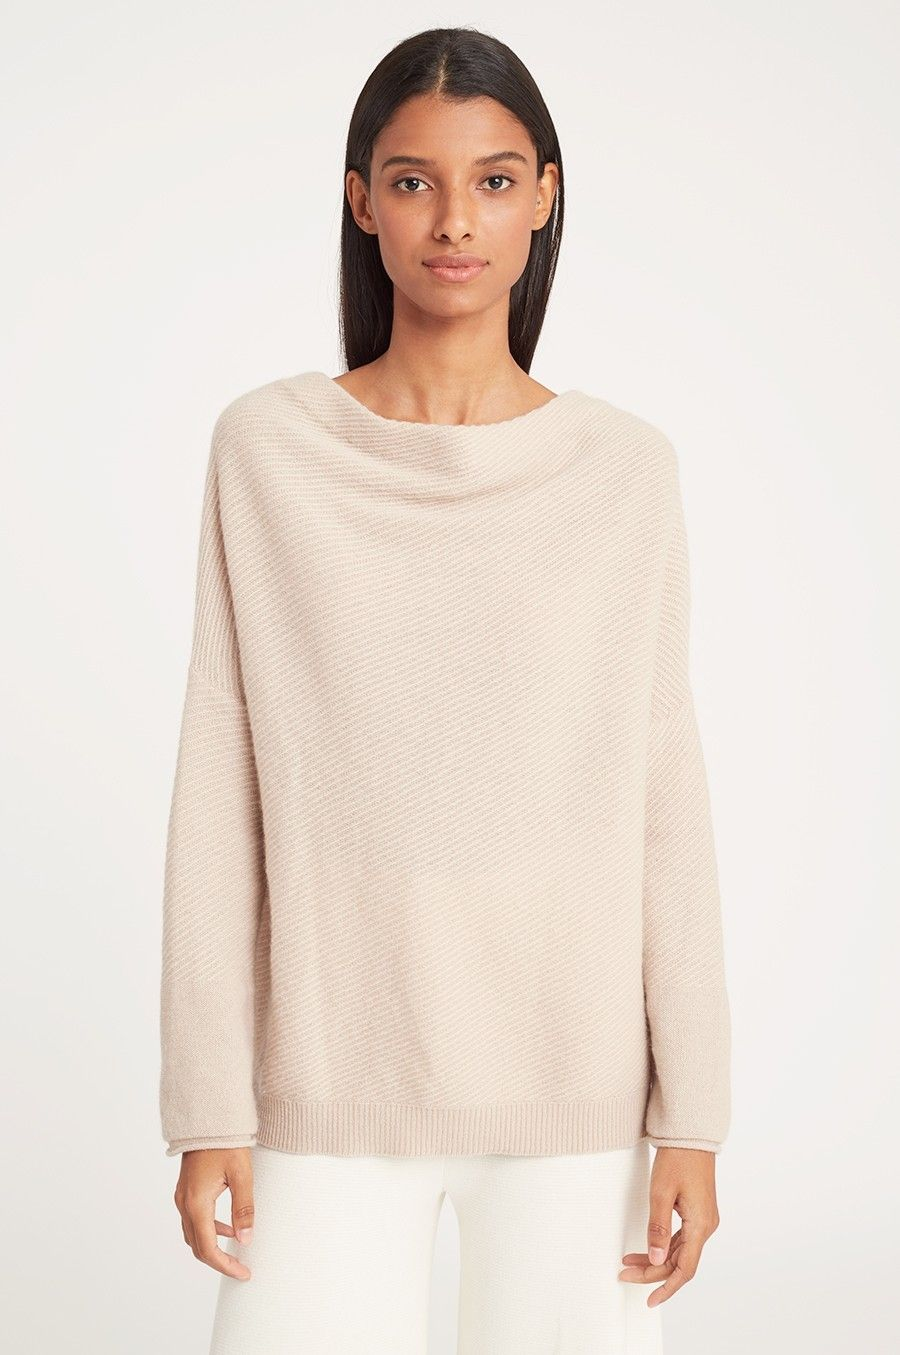 7dbc0e04190 Balance understated yet indulgent appeal with our Cashmere V-Back Sweater.  Rendered in 100